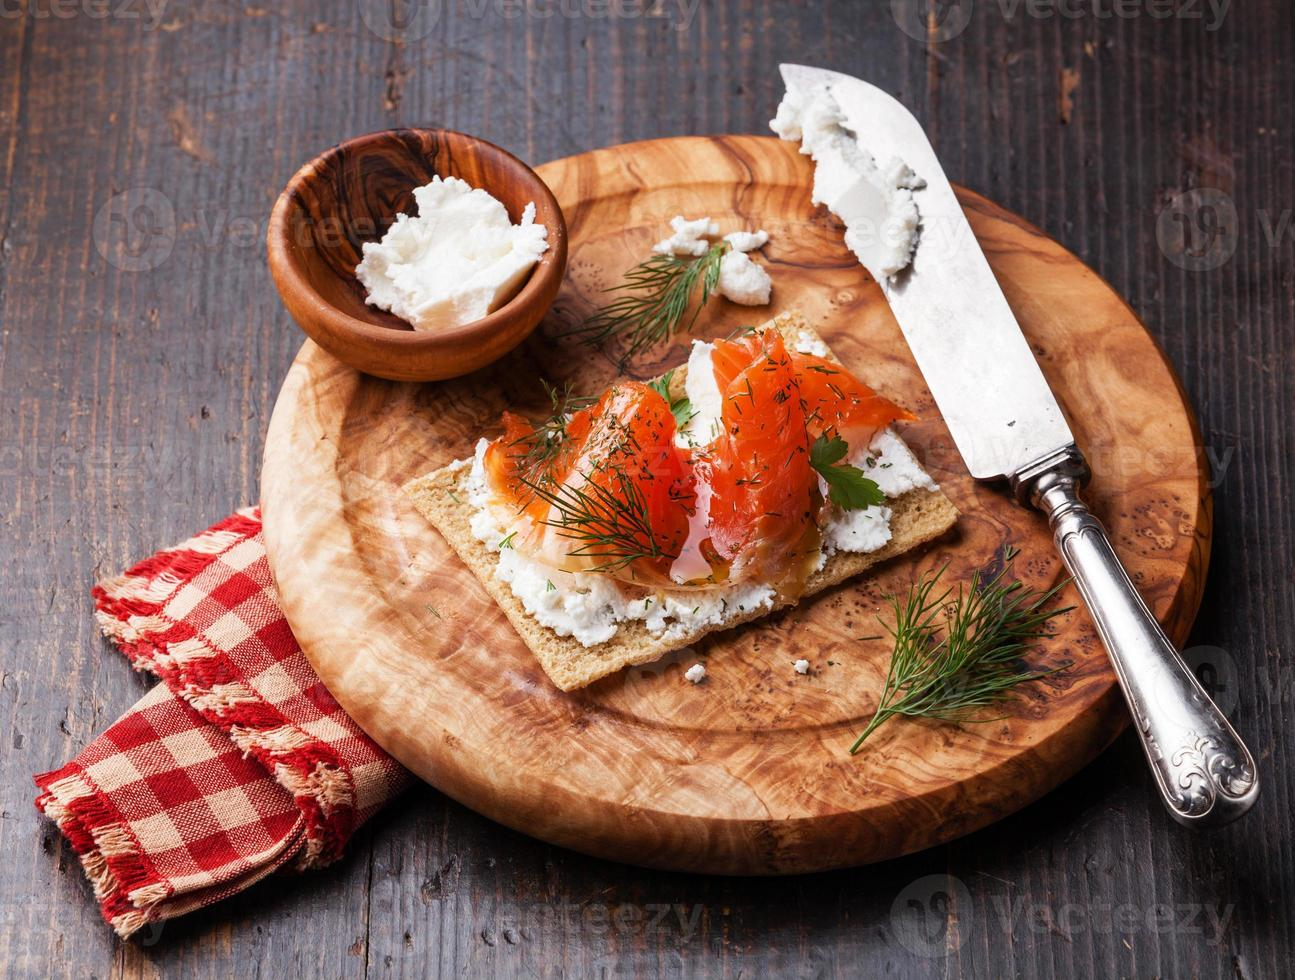 Crisp bread with Smoked salmon photo